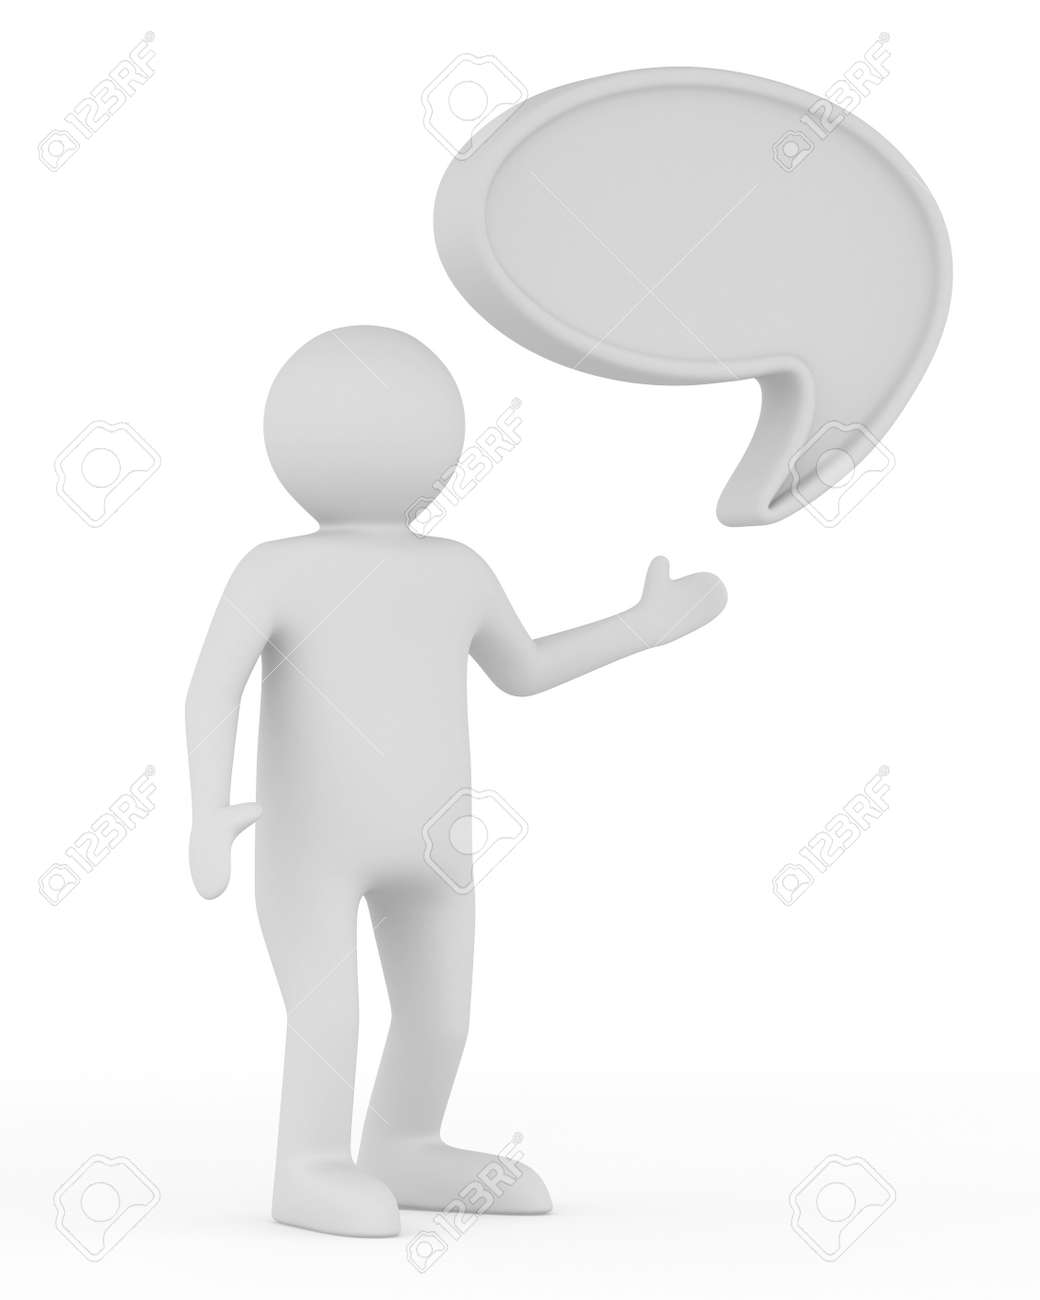 talk balloon on white background. Isolated 3D image Stock Photo - 16030551